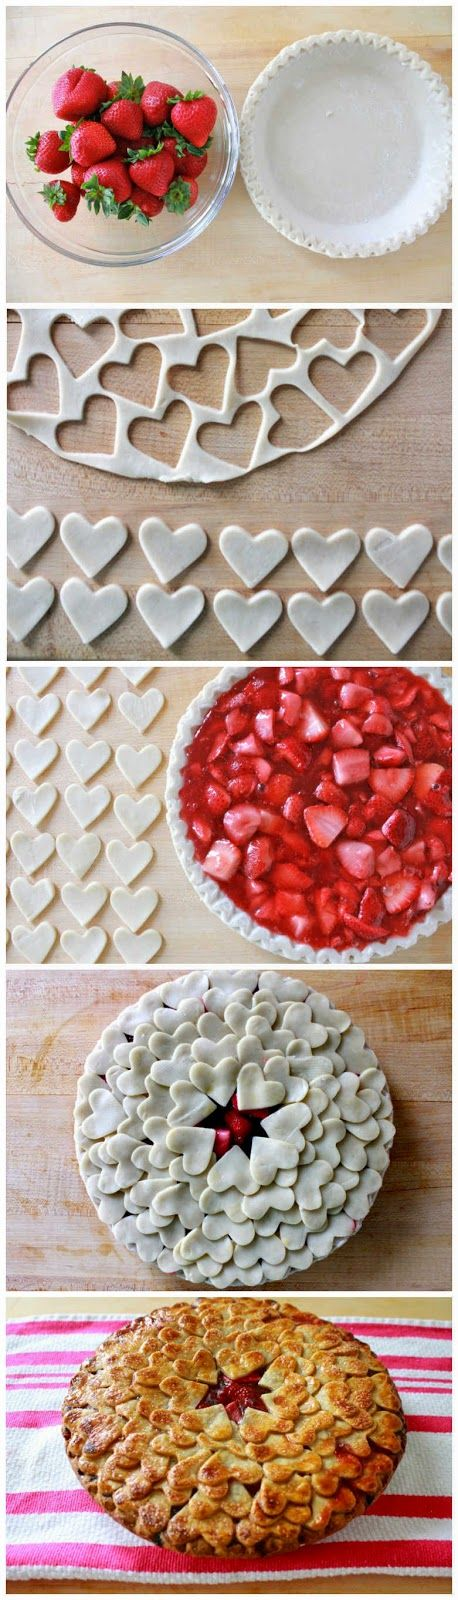 Strawberry Heart Pie #valentinesday Not like I ever bake pies but.. adorable!